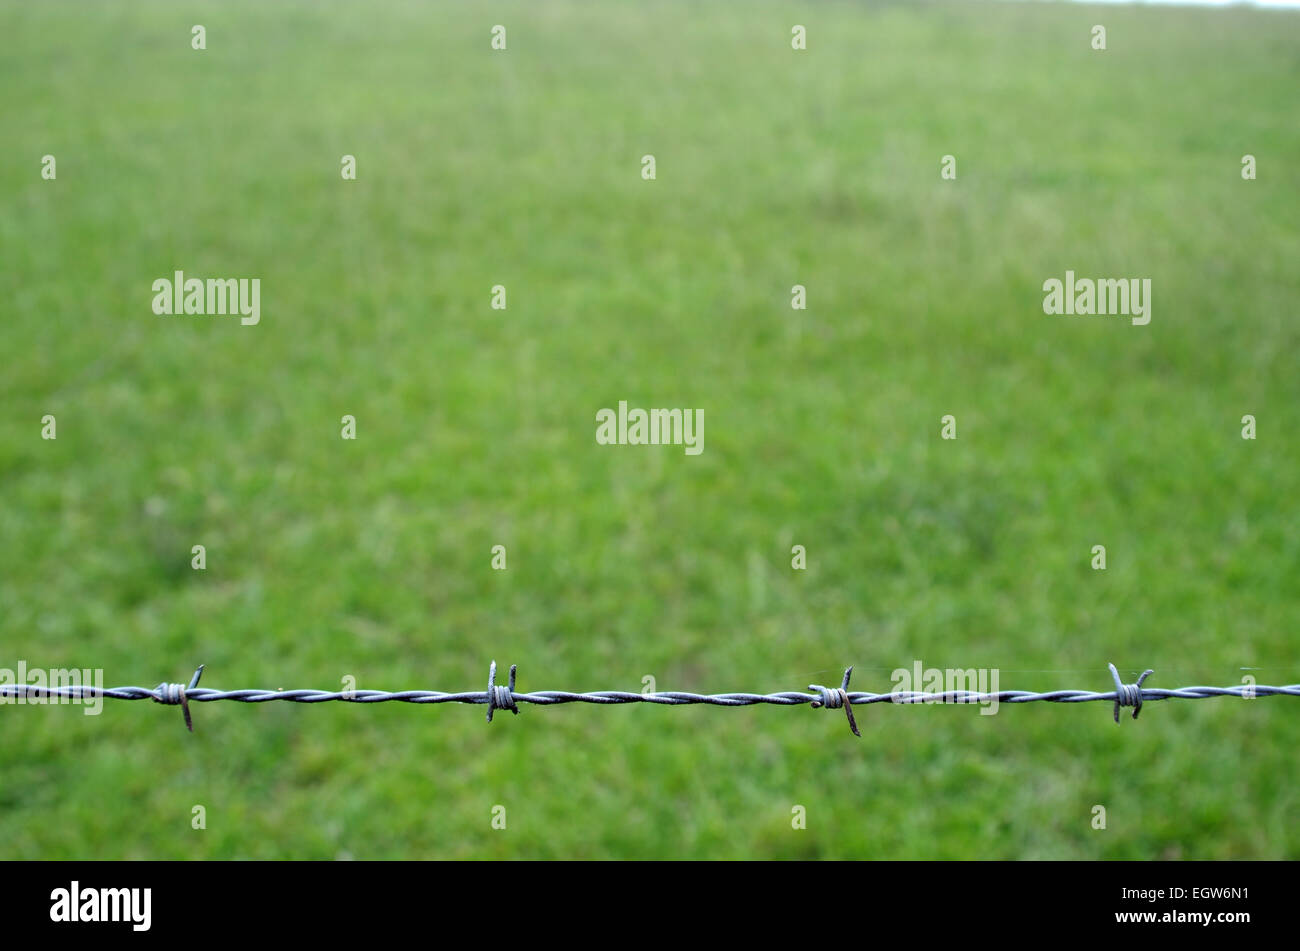 Barbed Wire fence at bottom of image - Stock Image